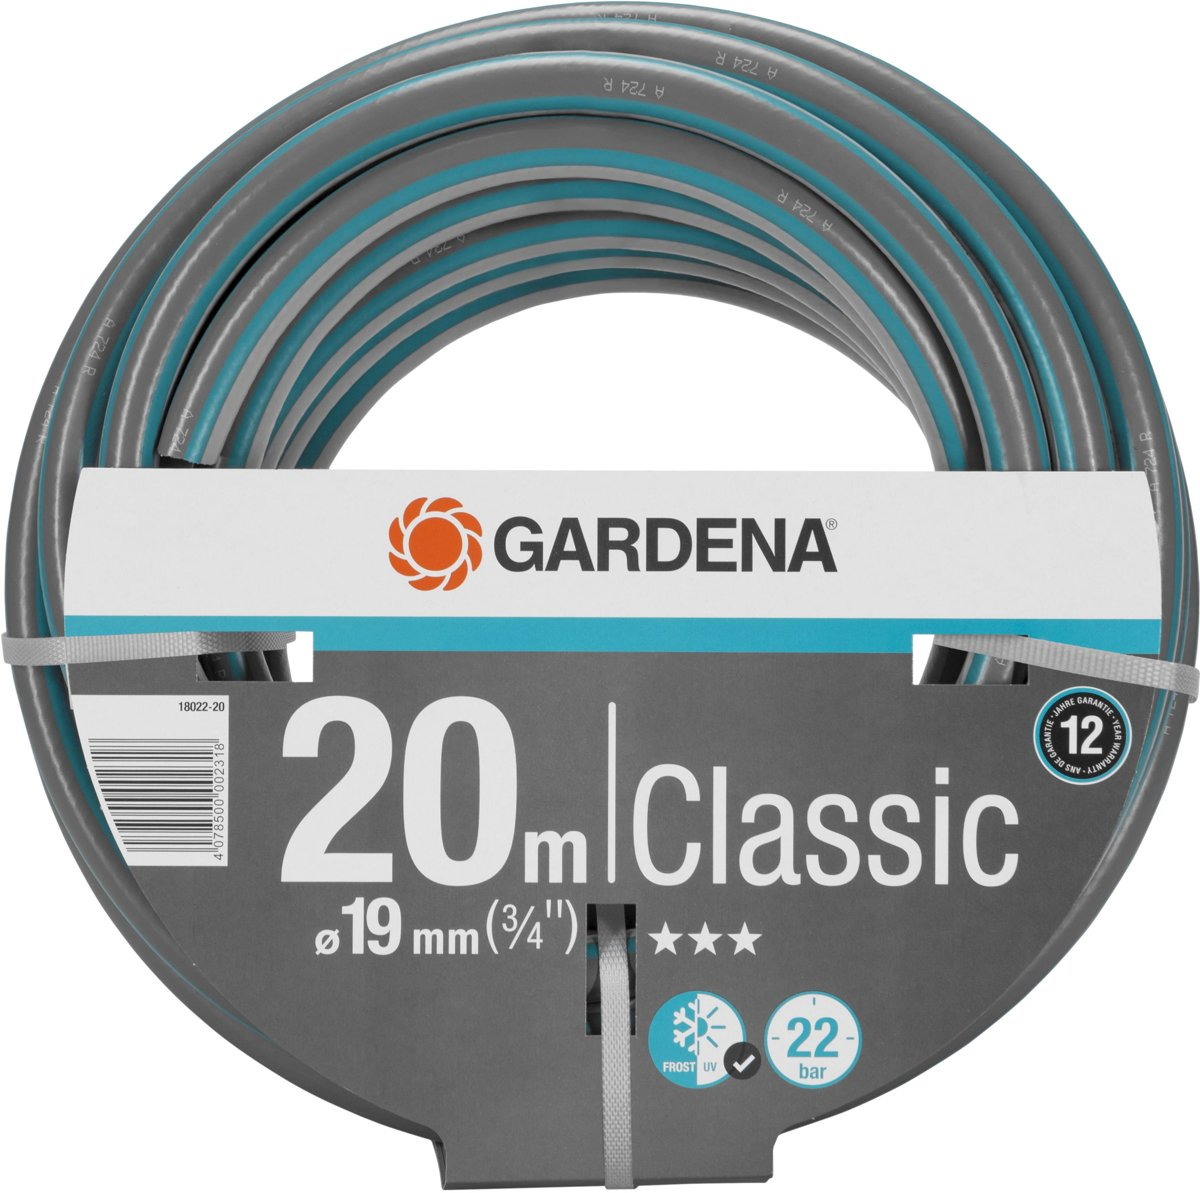 3 4 Duim Is Hoeveel Mm Gardena Tuinslang Classic 3 4 19mm 20m 18022